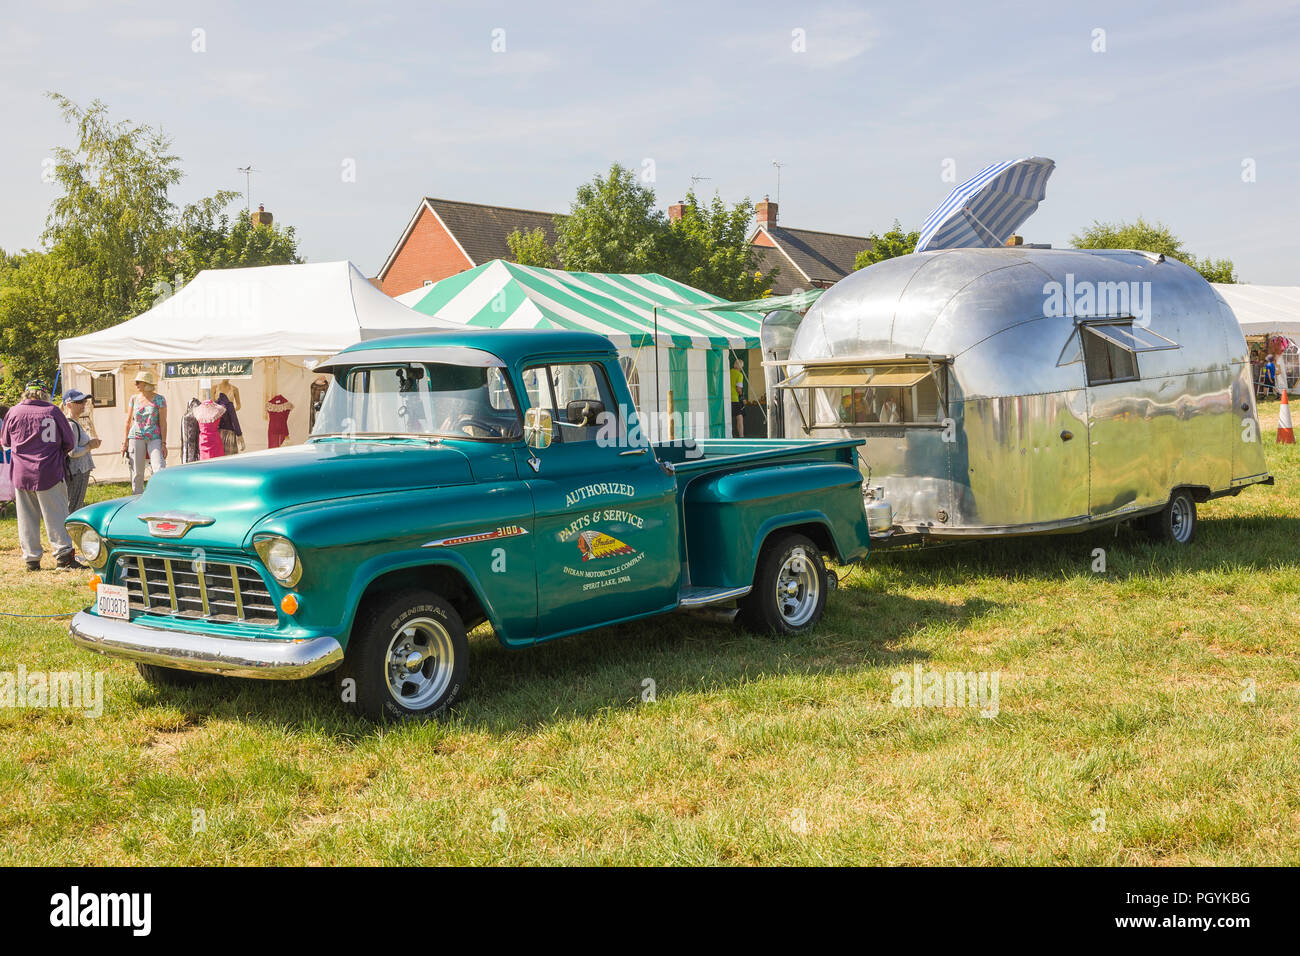 An old American Airstream streamlined caravan at Heddington Country Fair and Steam show in Wiltshire England UK towed by an old Chevrolet 3100 America - Stock Image